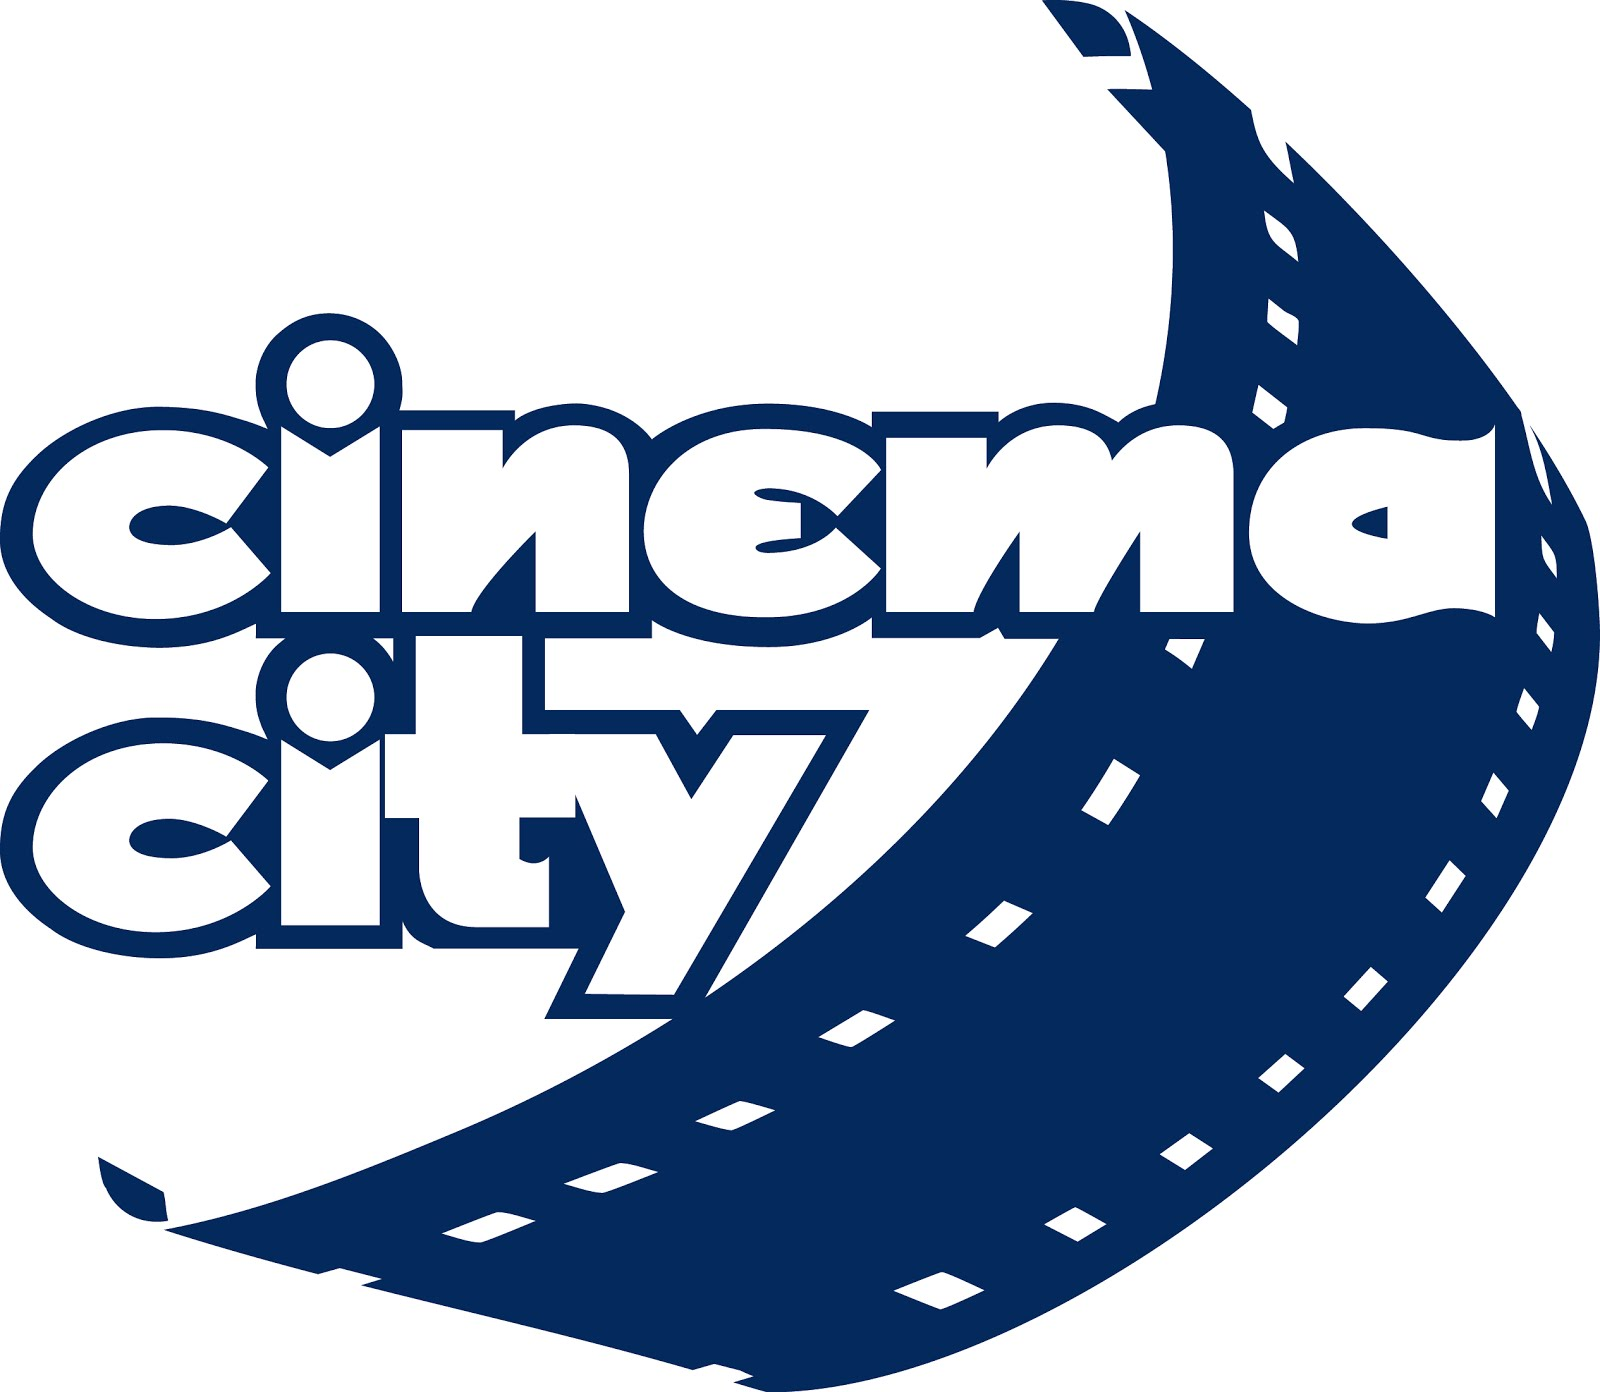 # Embaixadora Cinema City